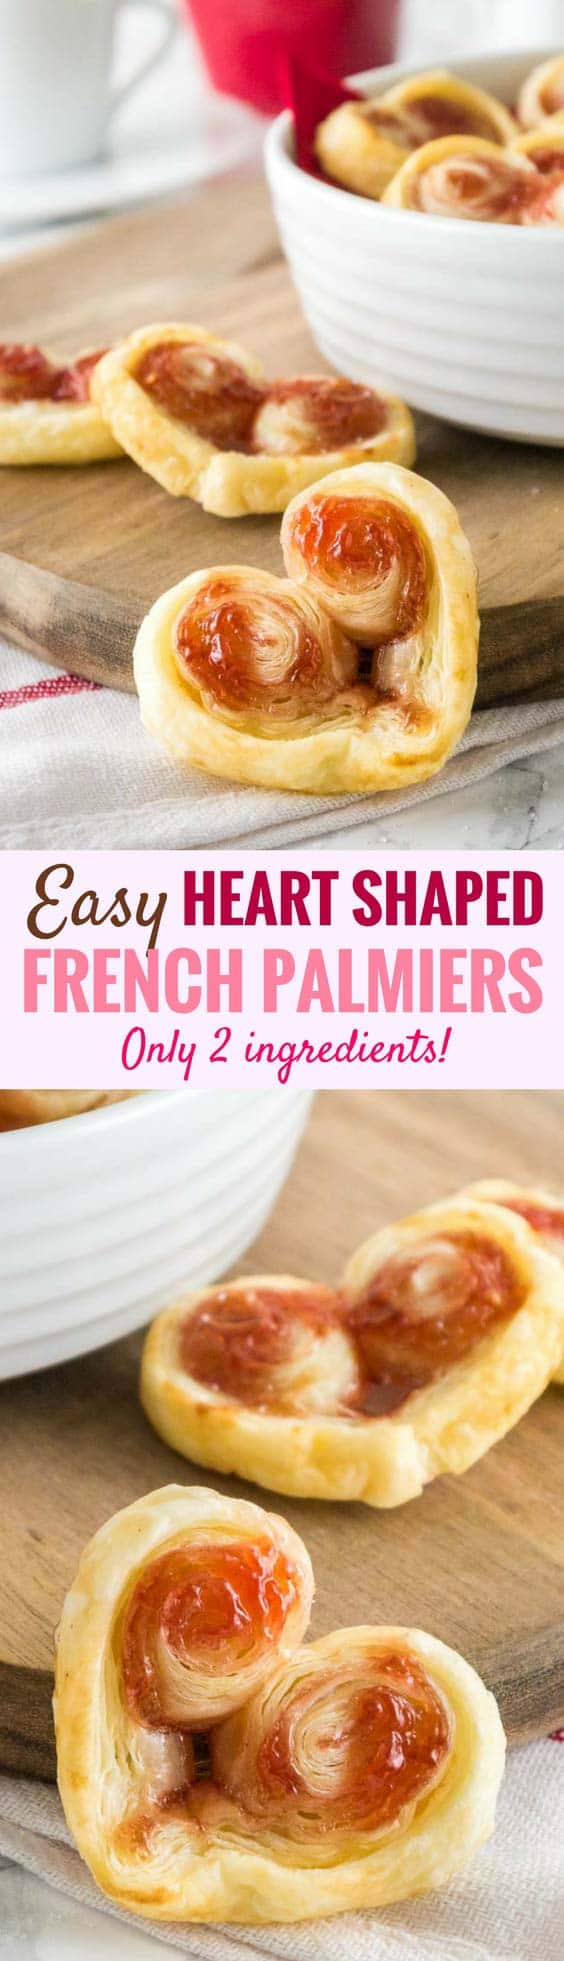 These heart-shaped Palmiers are made with only two ingredients! A French cookie recipe that's special enough for Valentine's Day but easy enough for every day. These puff pastry cookies are loved by kids and adults alike! #valentinesdaytreats #cookies #puffpastry #valentinesdesserts